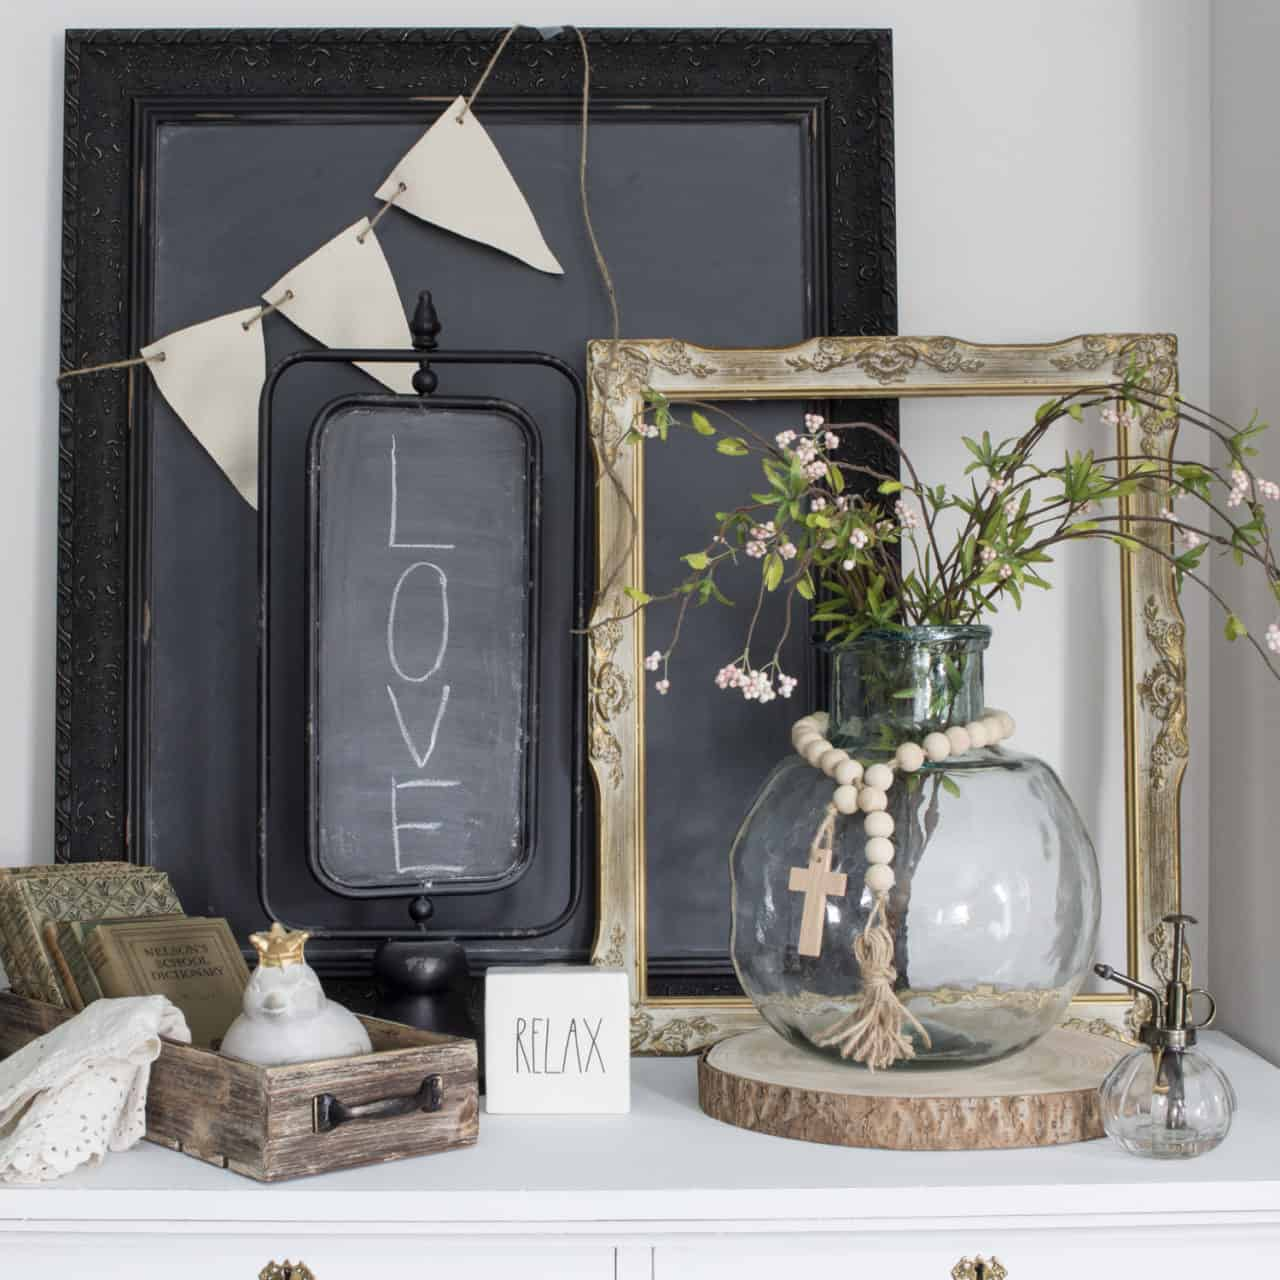 Home Decor I: Here's What I Think Of Home Decor Trends